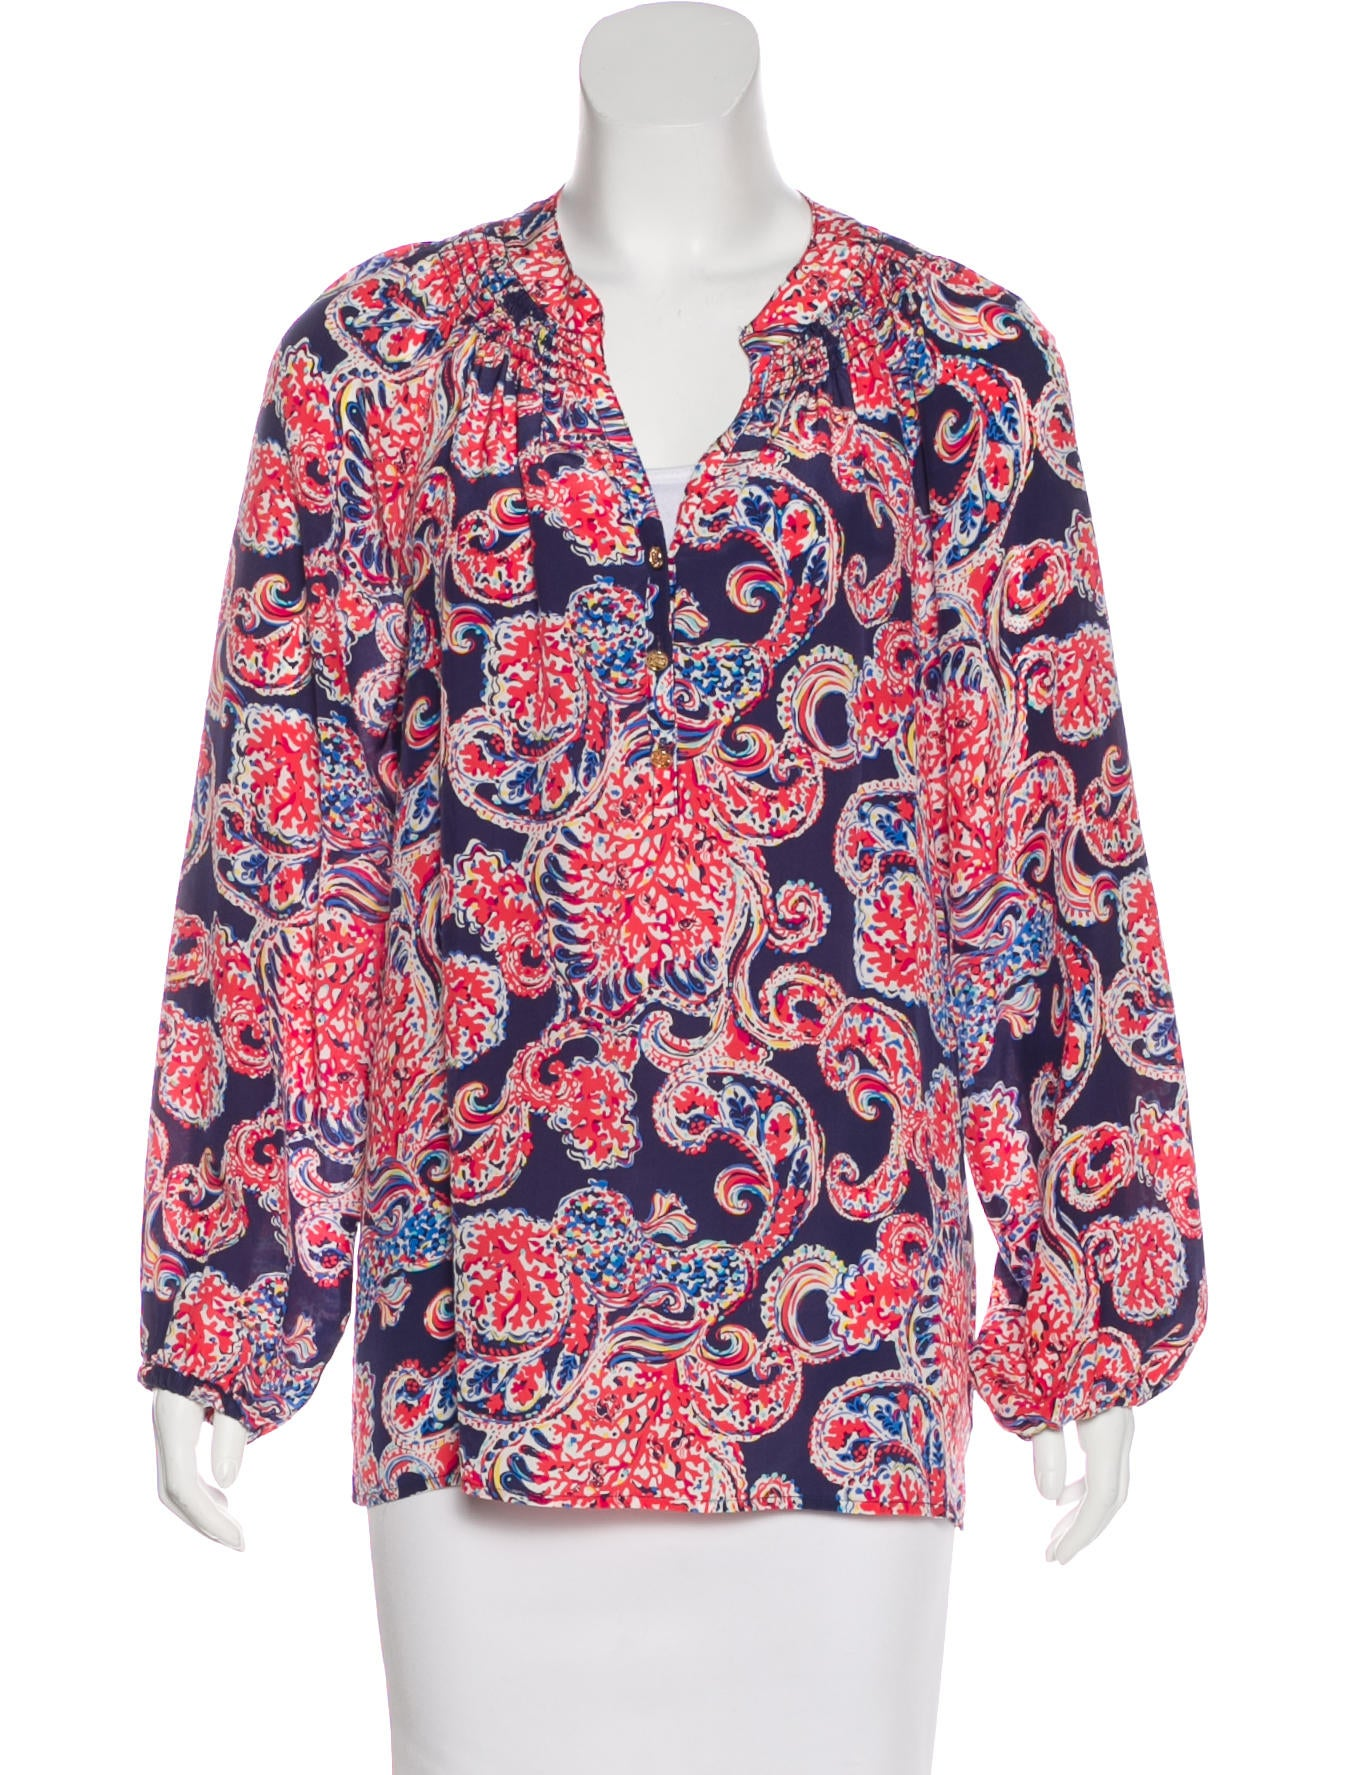 ef08a5b9679d2d Lilly Pulitzer Printed Silk Blouse - Clothing - WLL20322